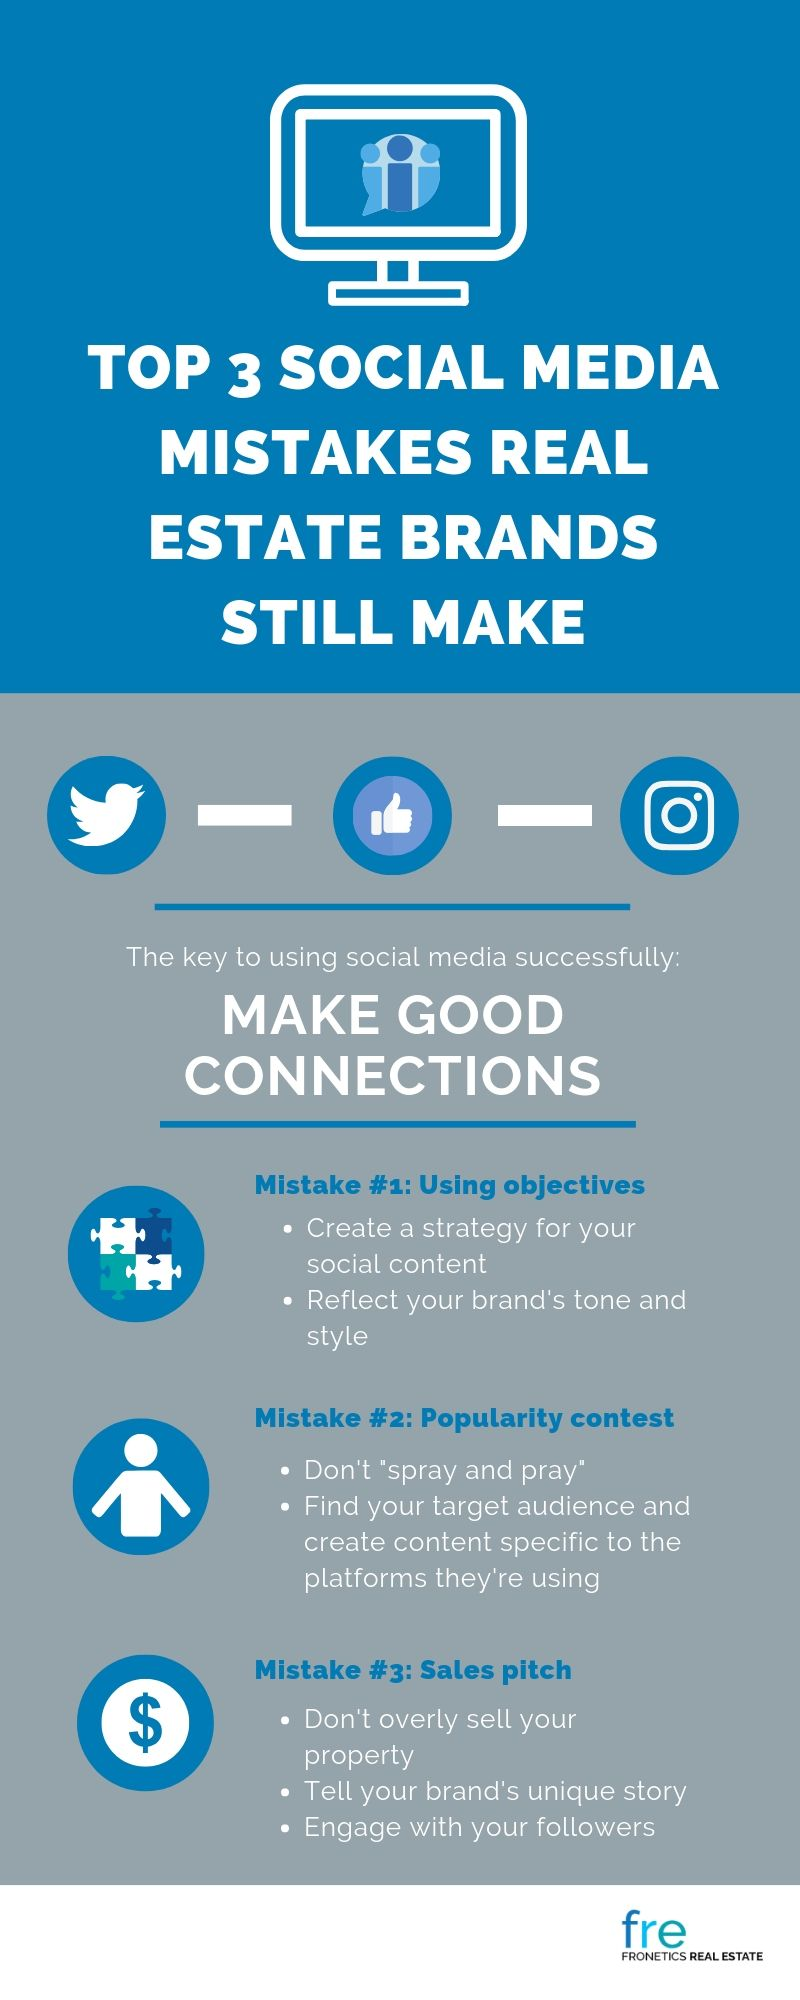 Top 3 Social Media Mistakes Real Estate Brands Still Make